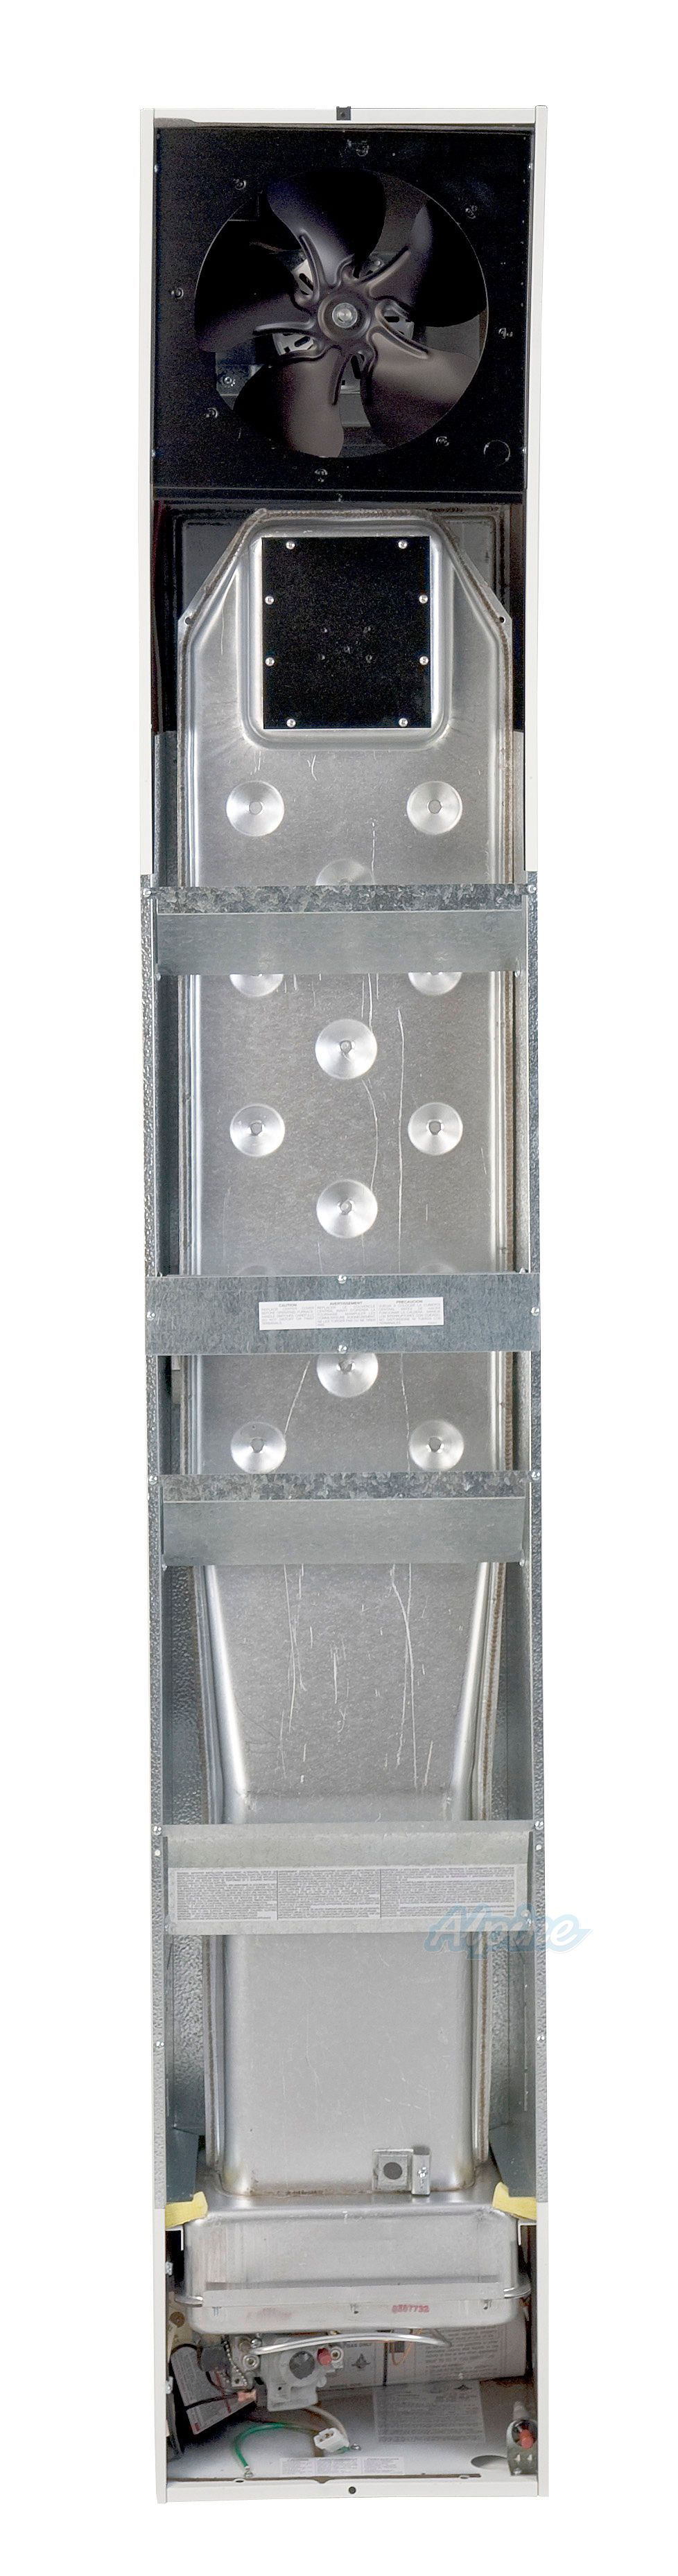 Williams 4007732 40 000 Btu 75 Afue Direct Vent Wall Furnace Bottom Air Outlet Natural Gas 115 Vac Standing Pilot